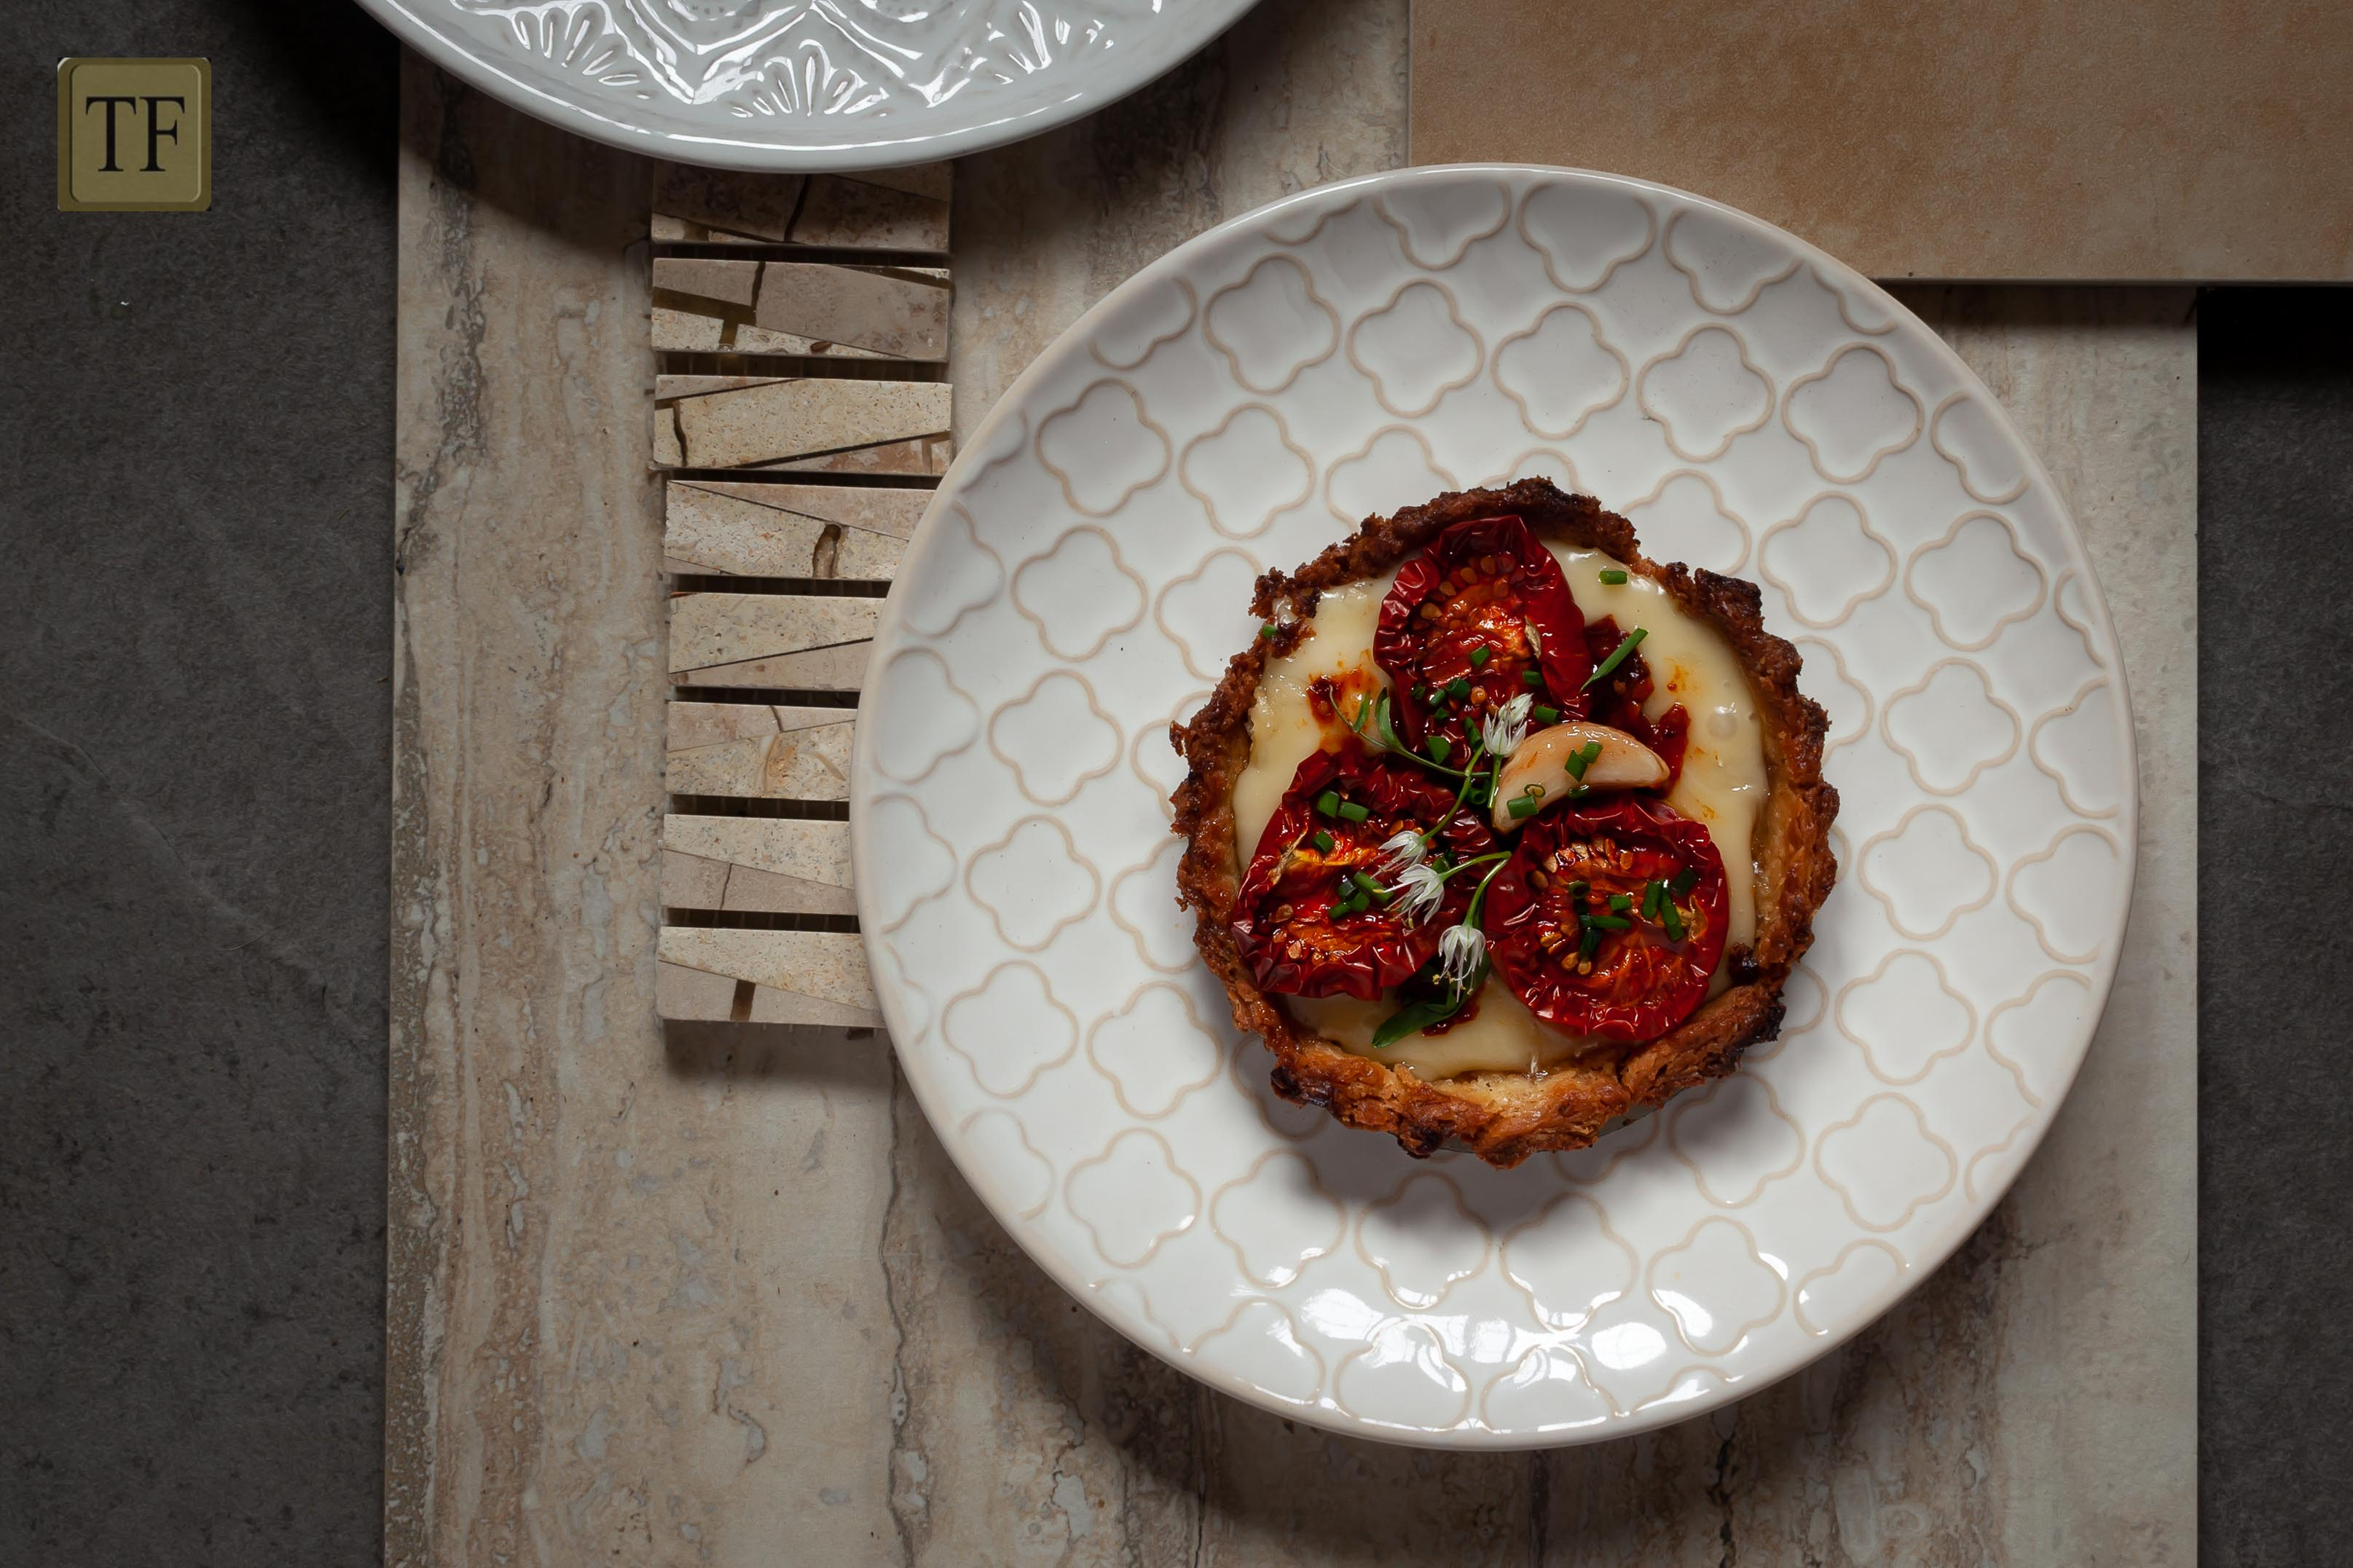 tomato tart made with garlic confit, dried tomatoes, tomato paste and brie